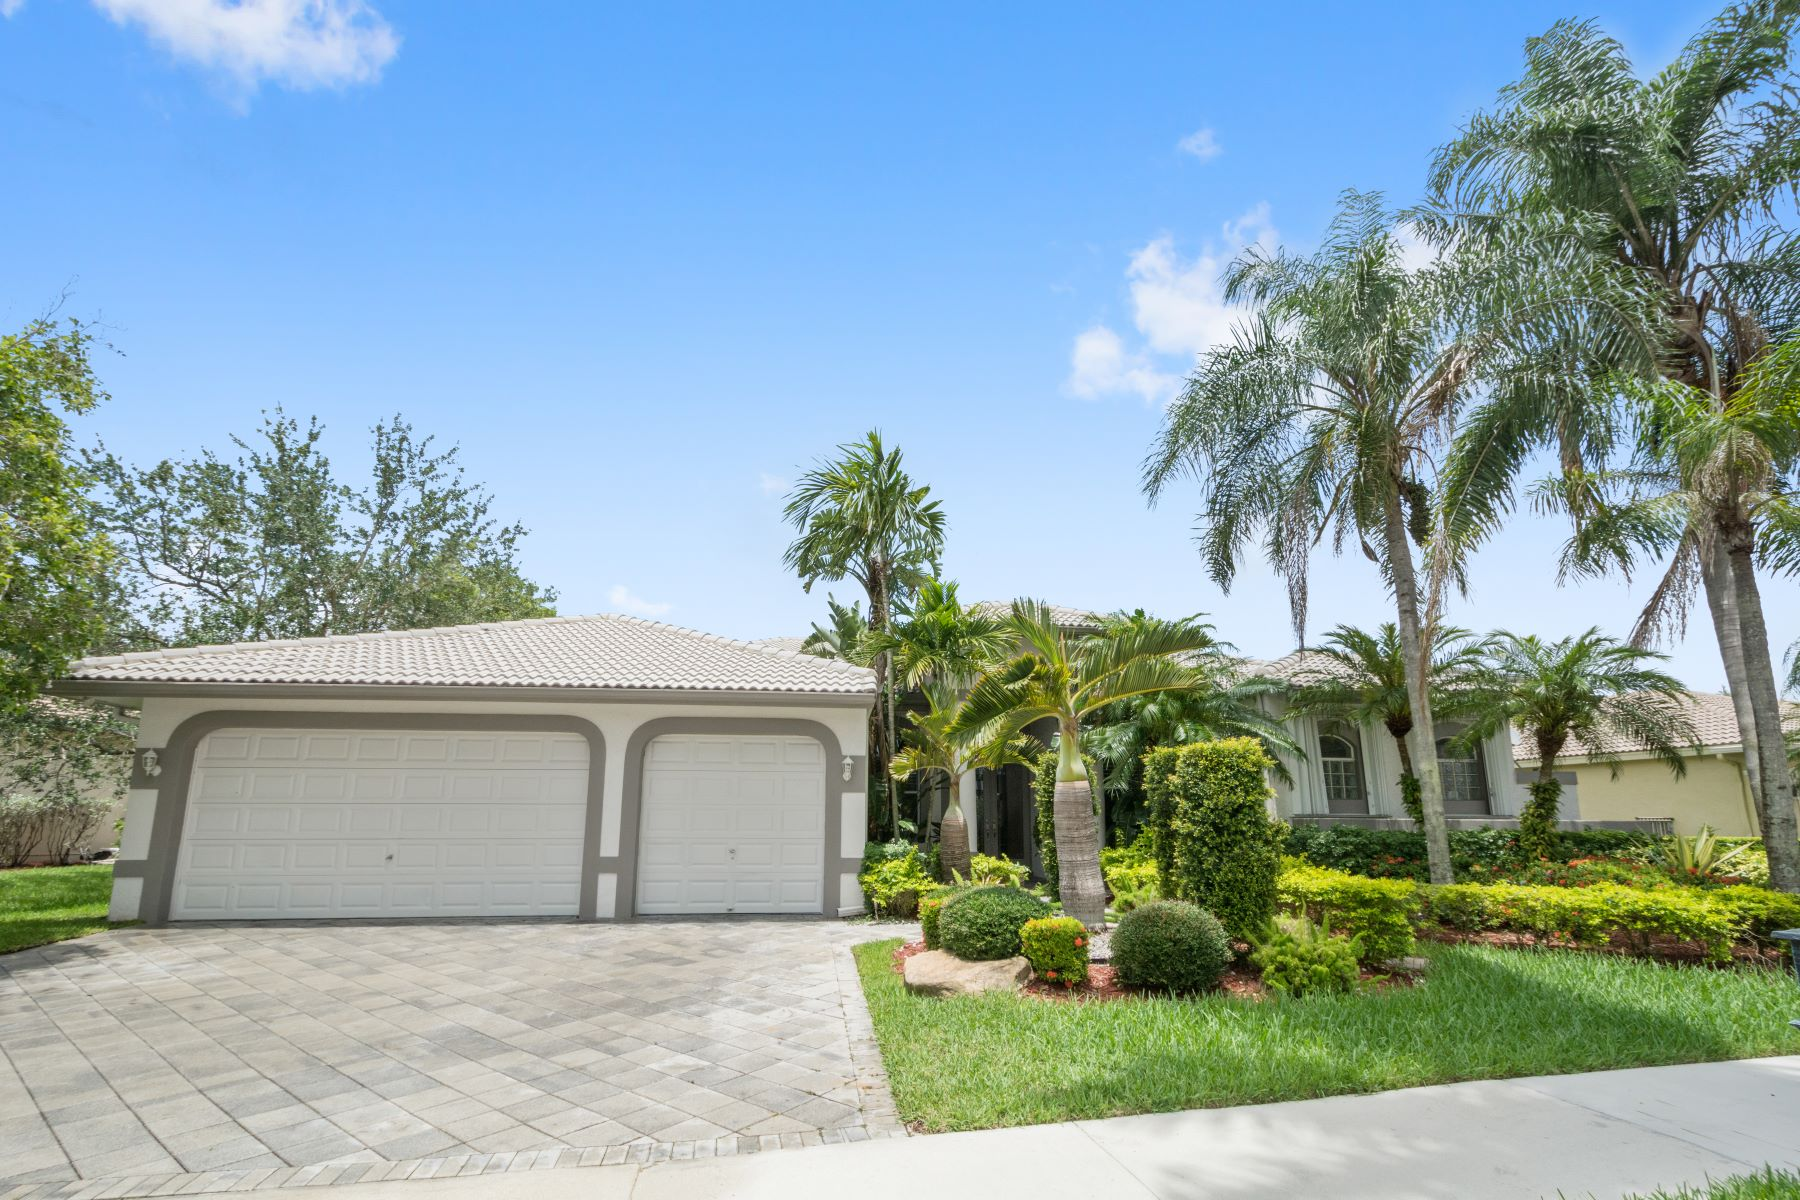 Single Family Homes for Sale at 2536 Eagle Run Dr Weston, Florida 33327 United States